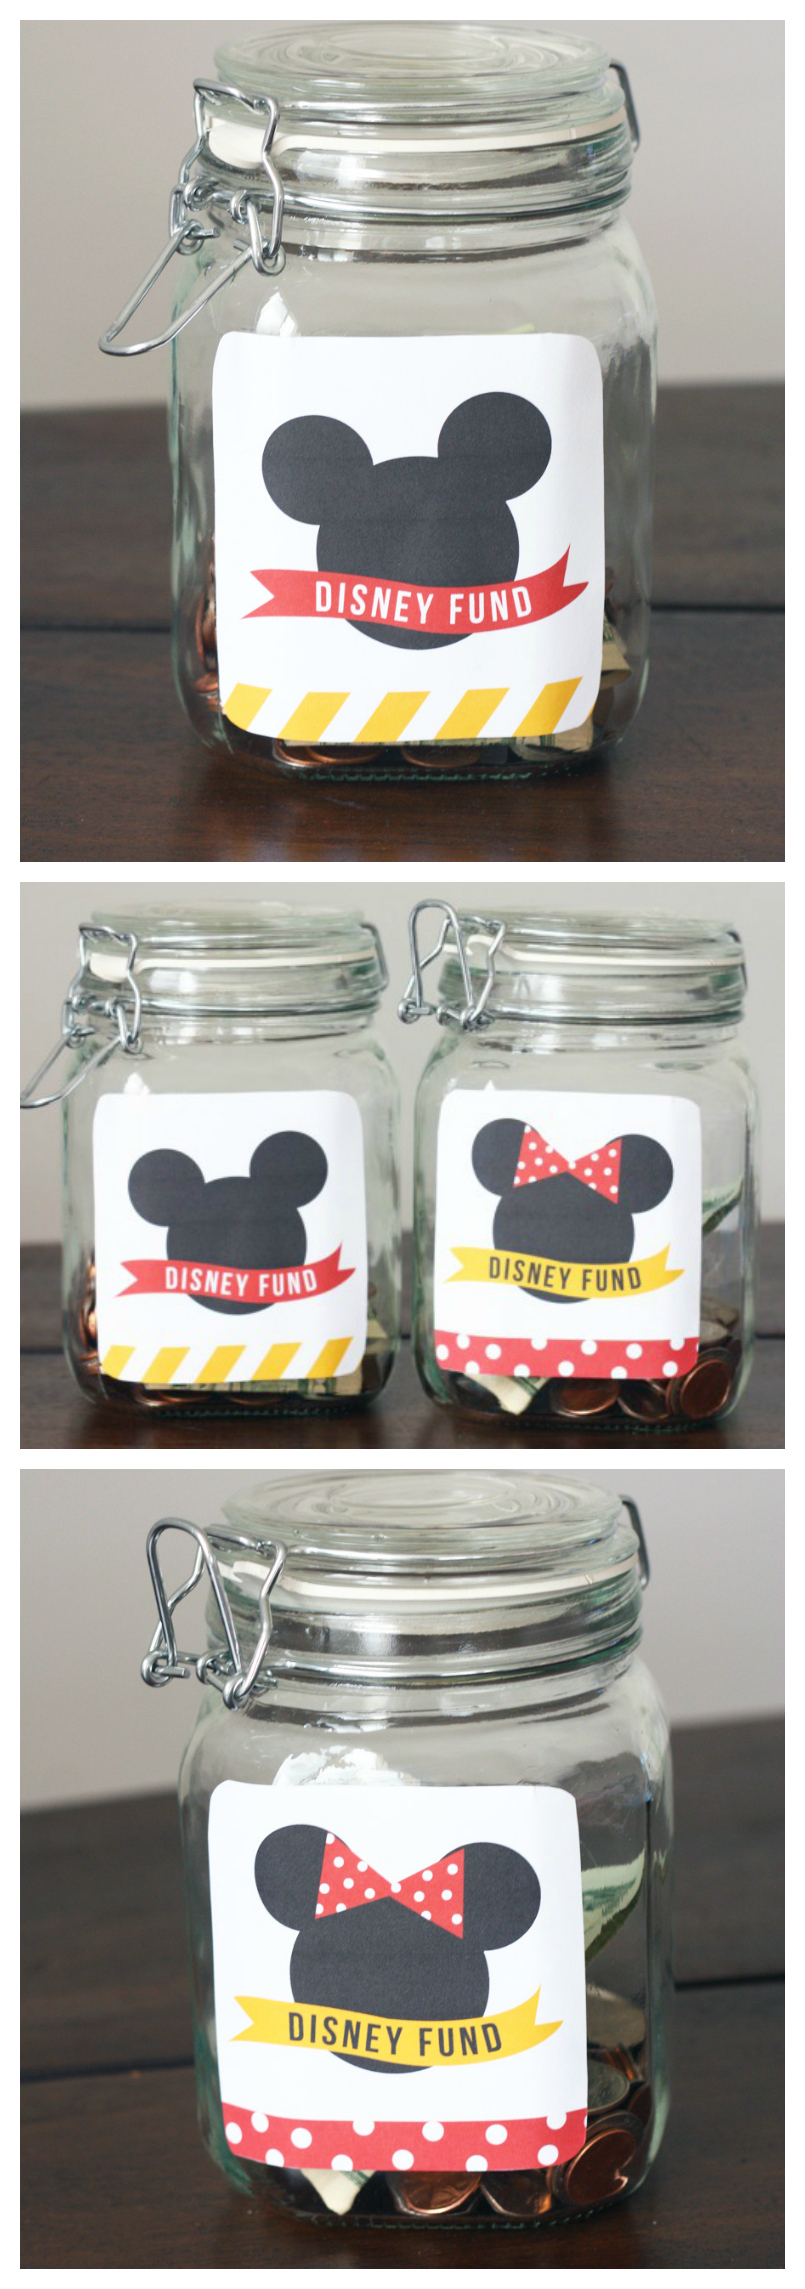 Free Printable Disney Fund Tags | The cutest DIY Disney Bank